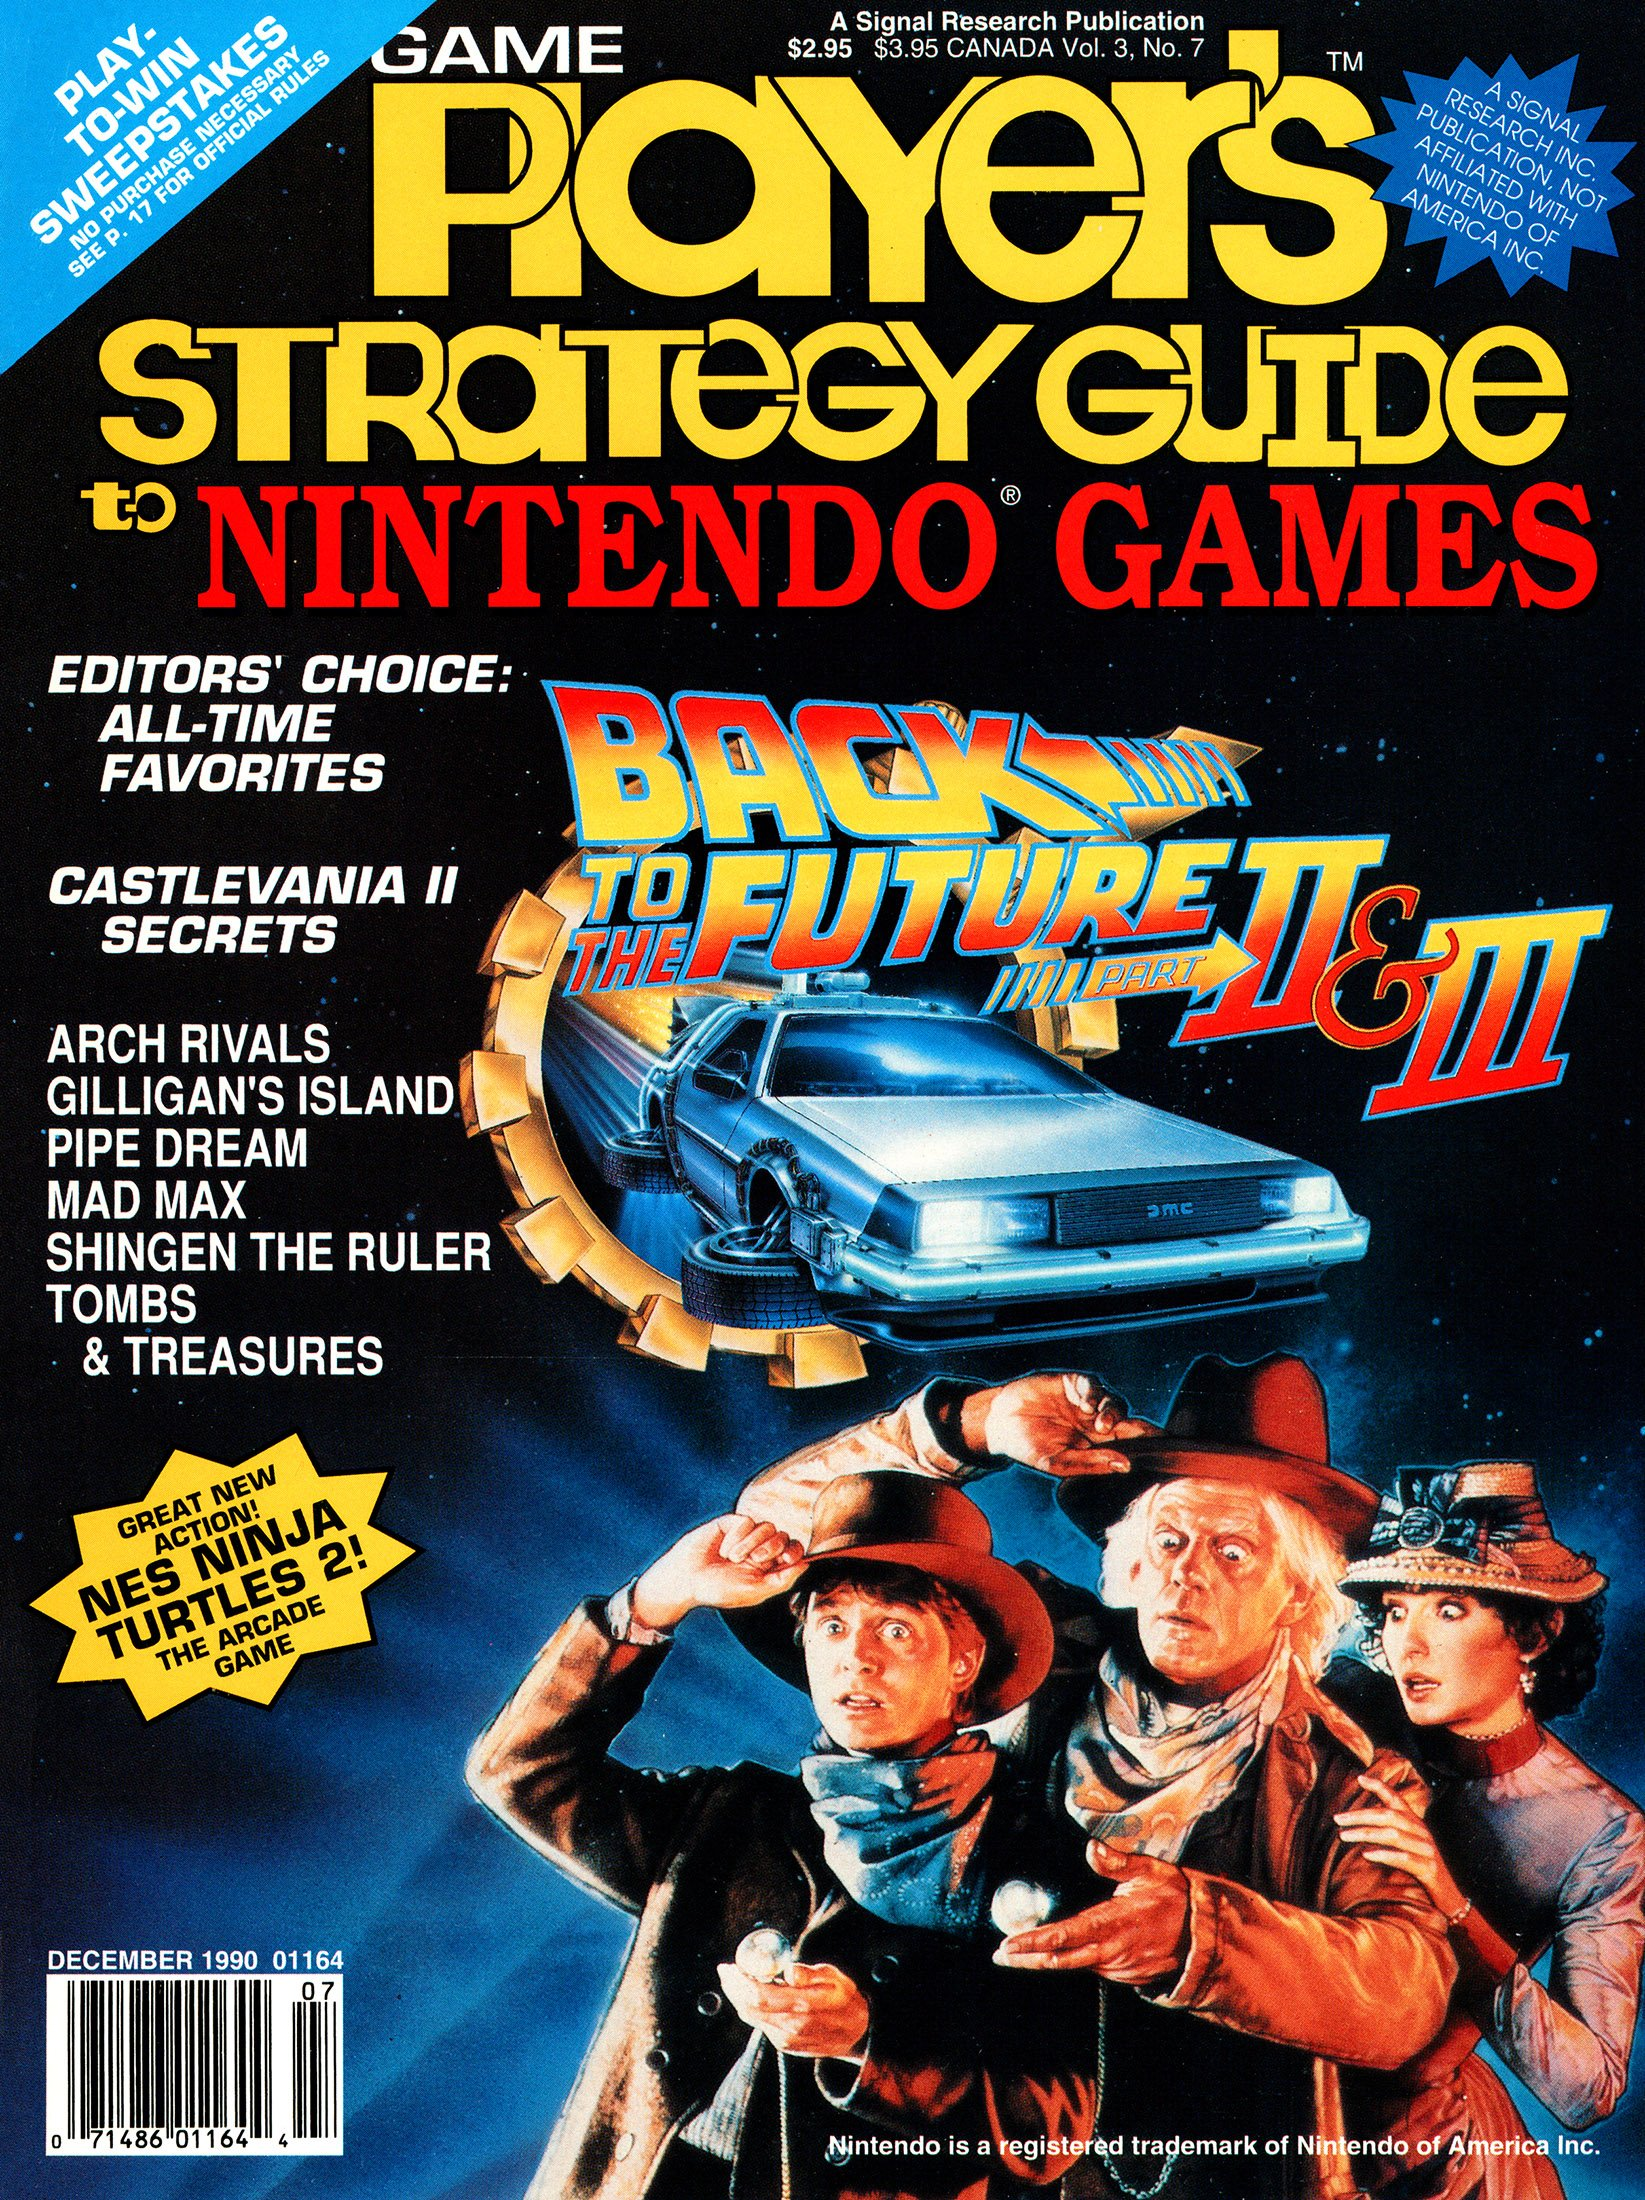 Game Player's Strategy Guide to Nintendo Games Volume 3 Number 7 (December 1990)